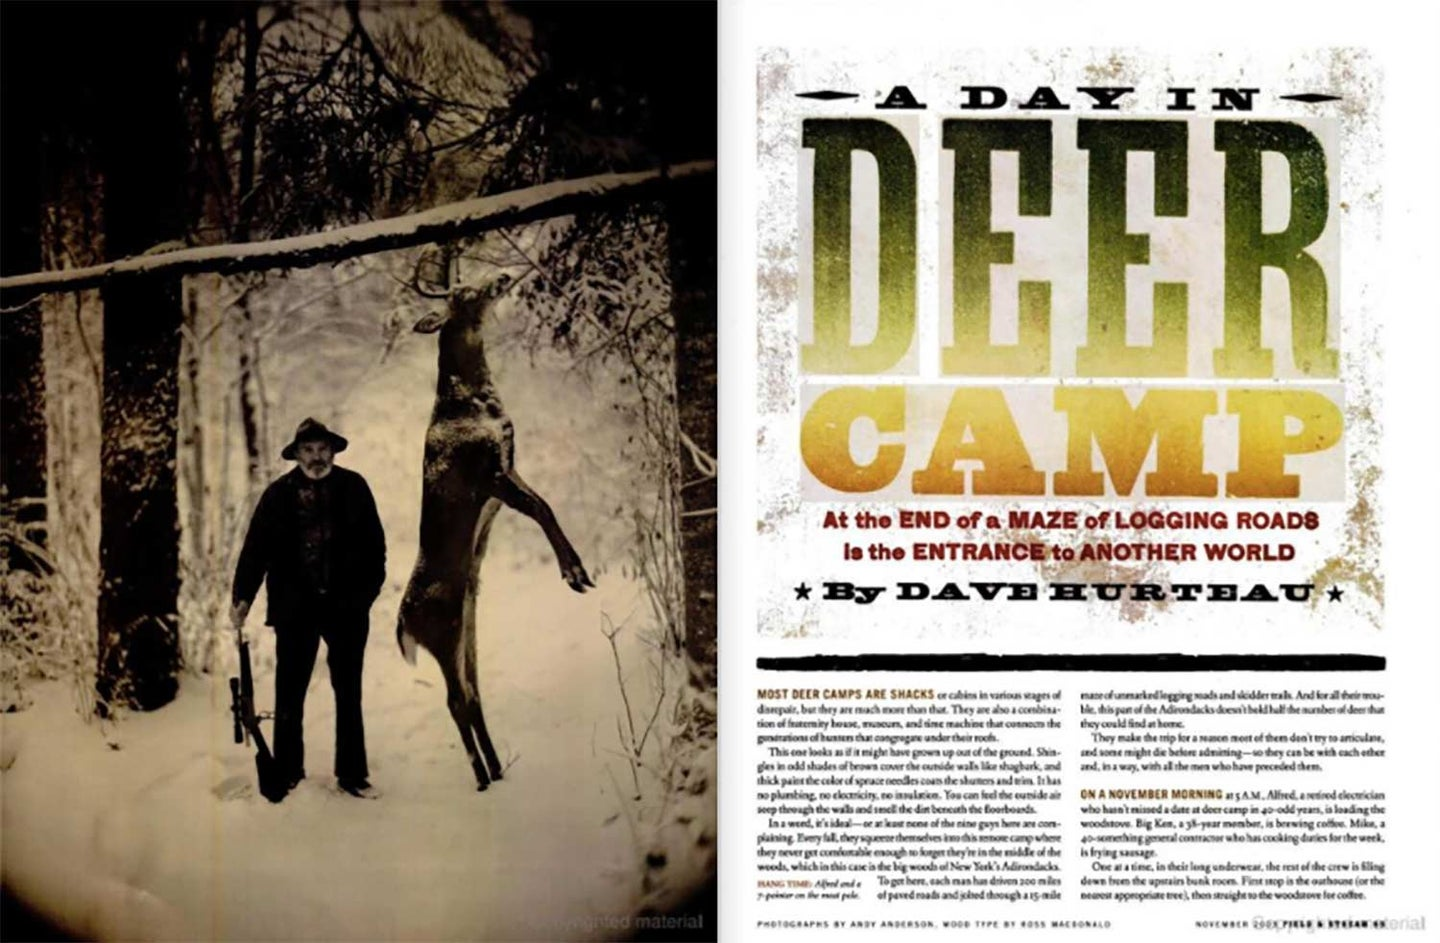 A clipping from Field & Stream magazine showing a hunter next to a meat pole.